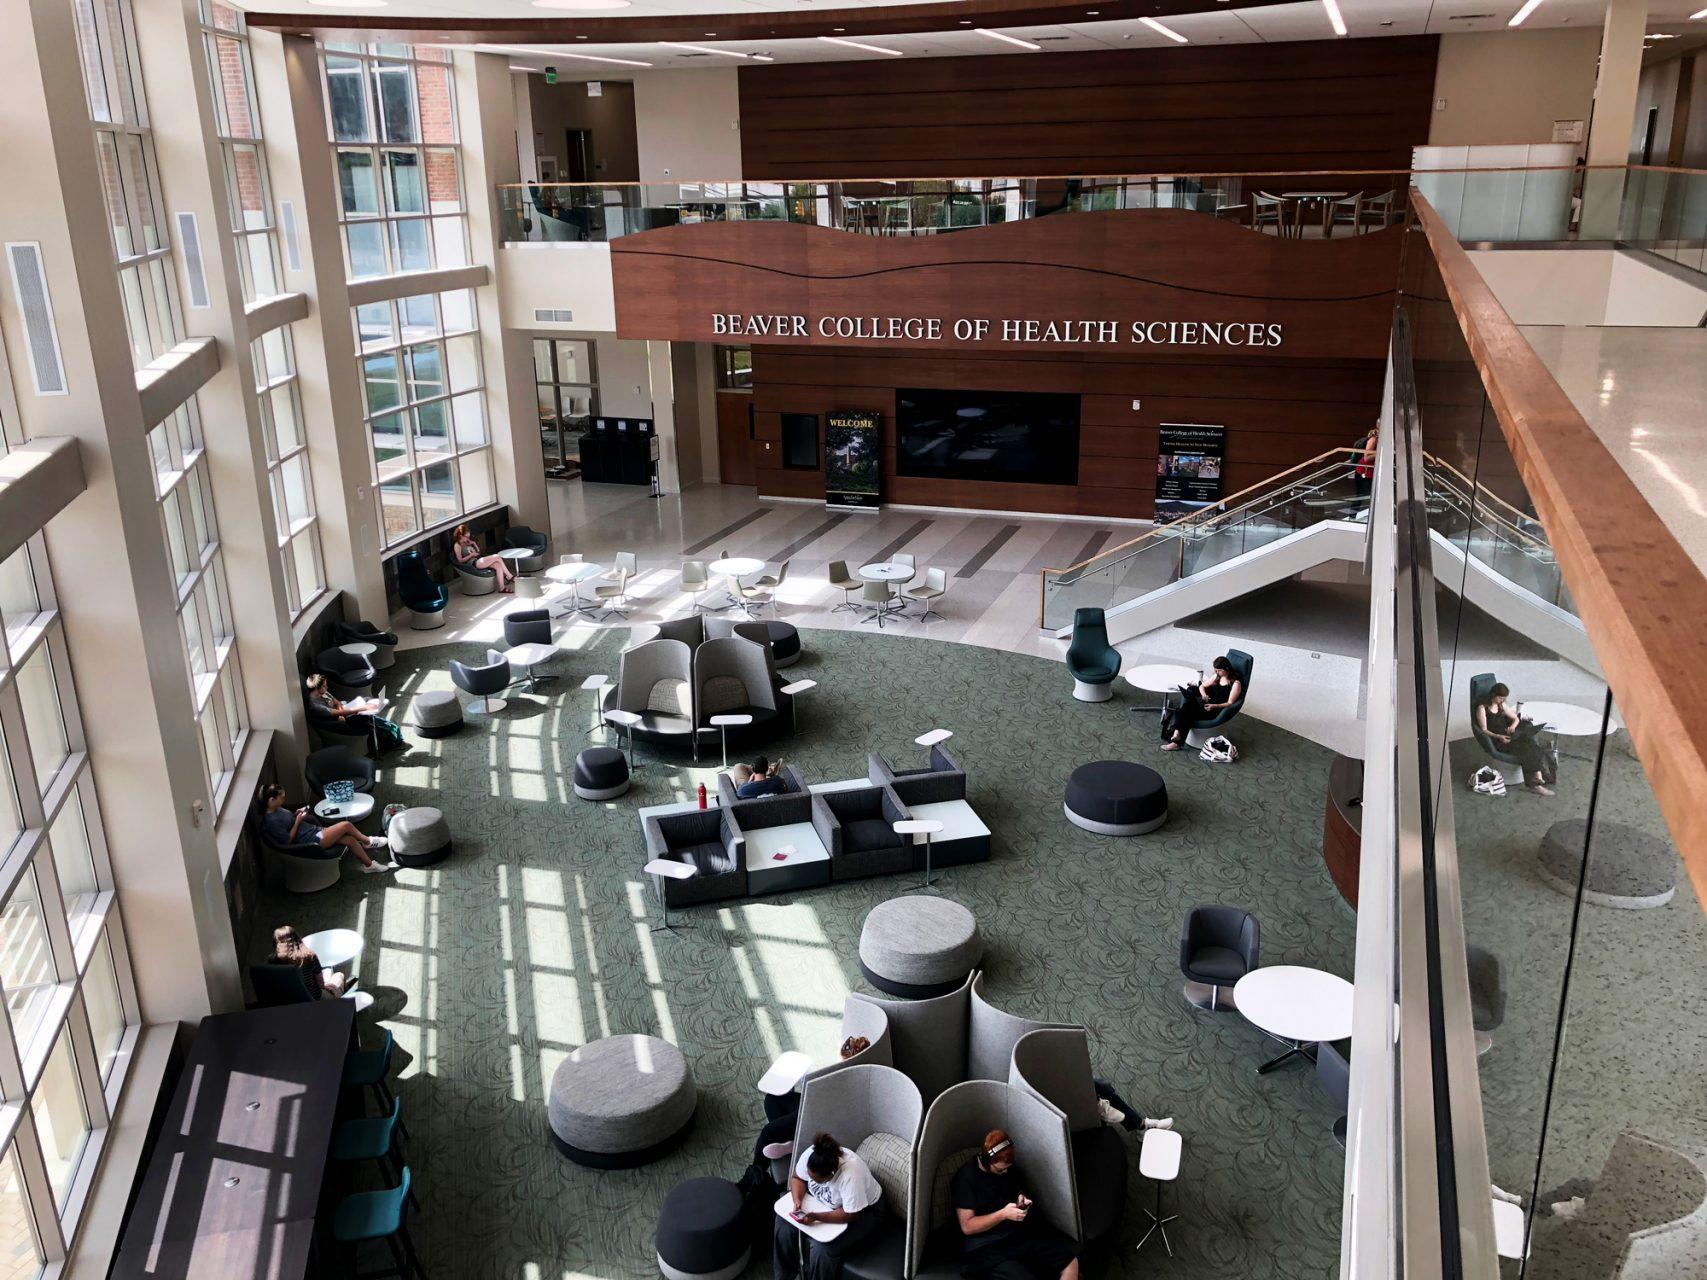 The new state of the art building for the Beaver College of Health Sciences has multiple spaces for students to wait for their class or get work done.